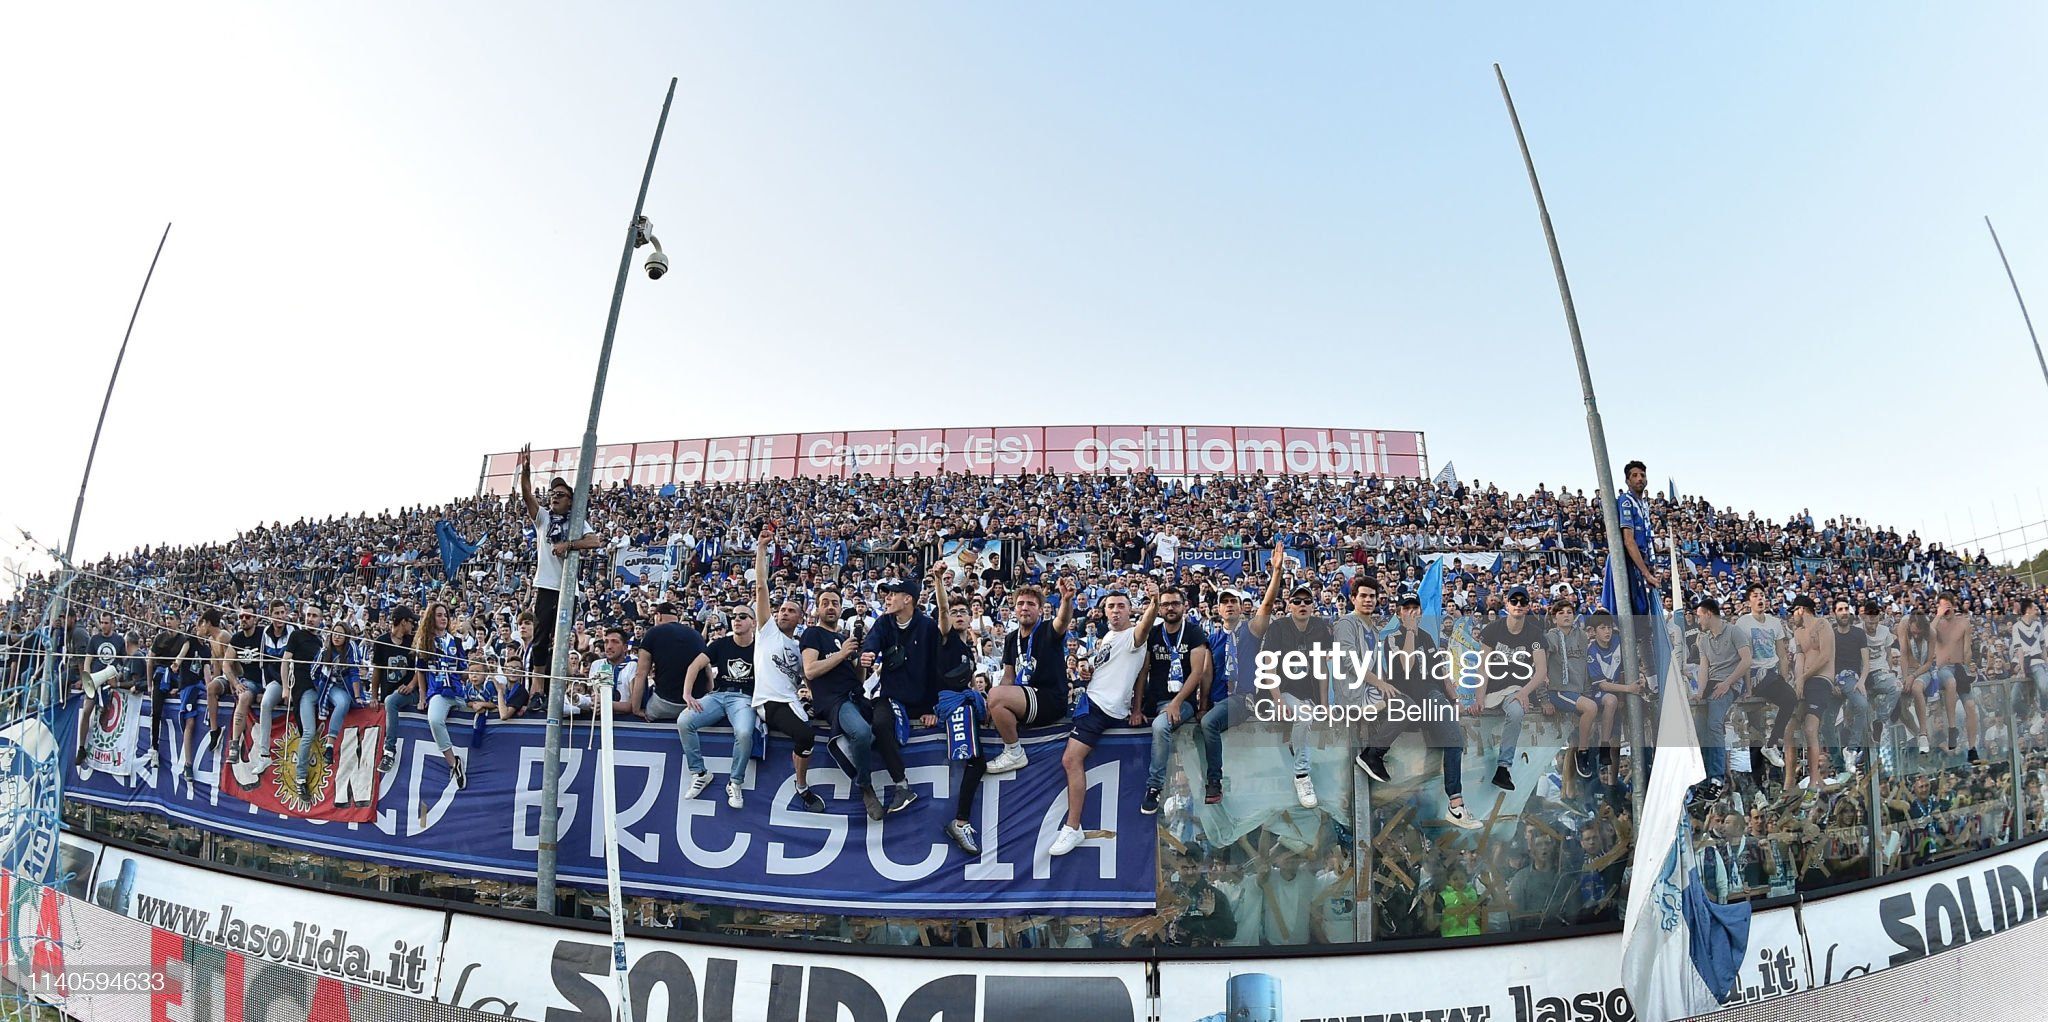 fans-of-brescia-calcio-celebrate-the-victory-of-the-serie-b-after-picture-id1140594633?s=2048x2048